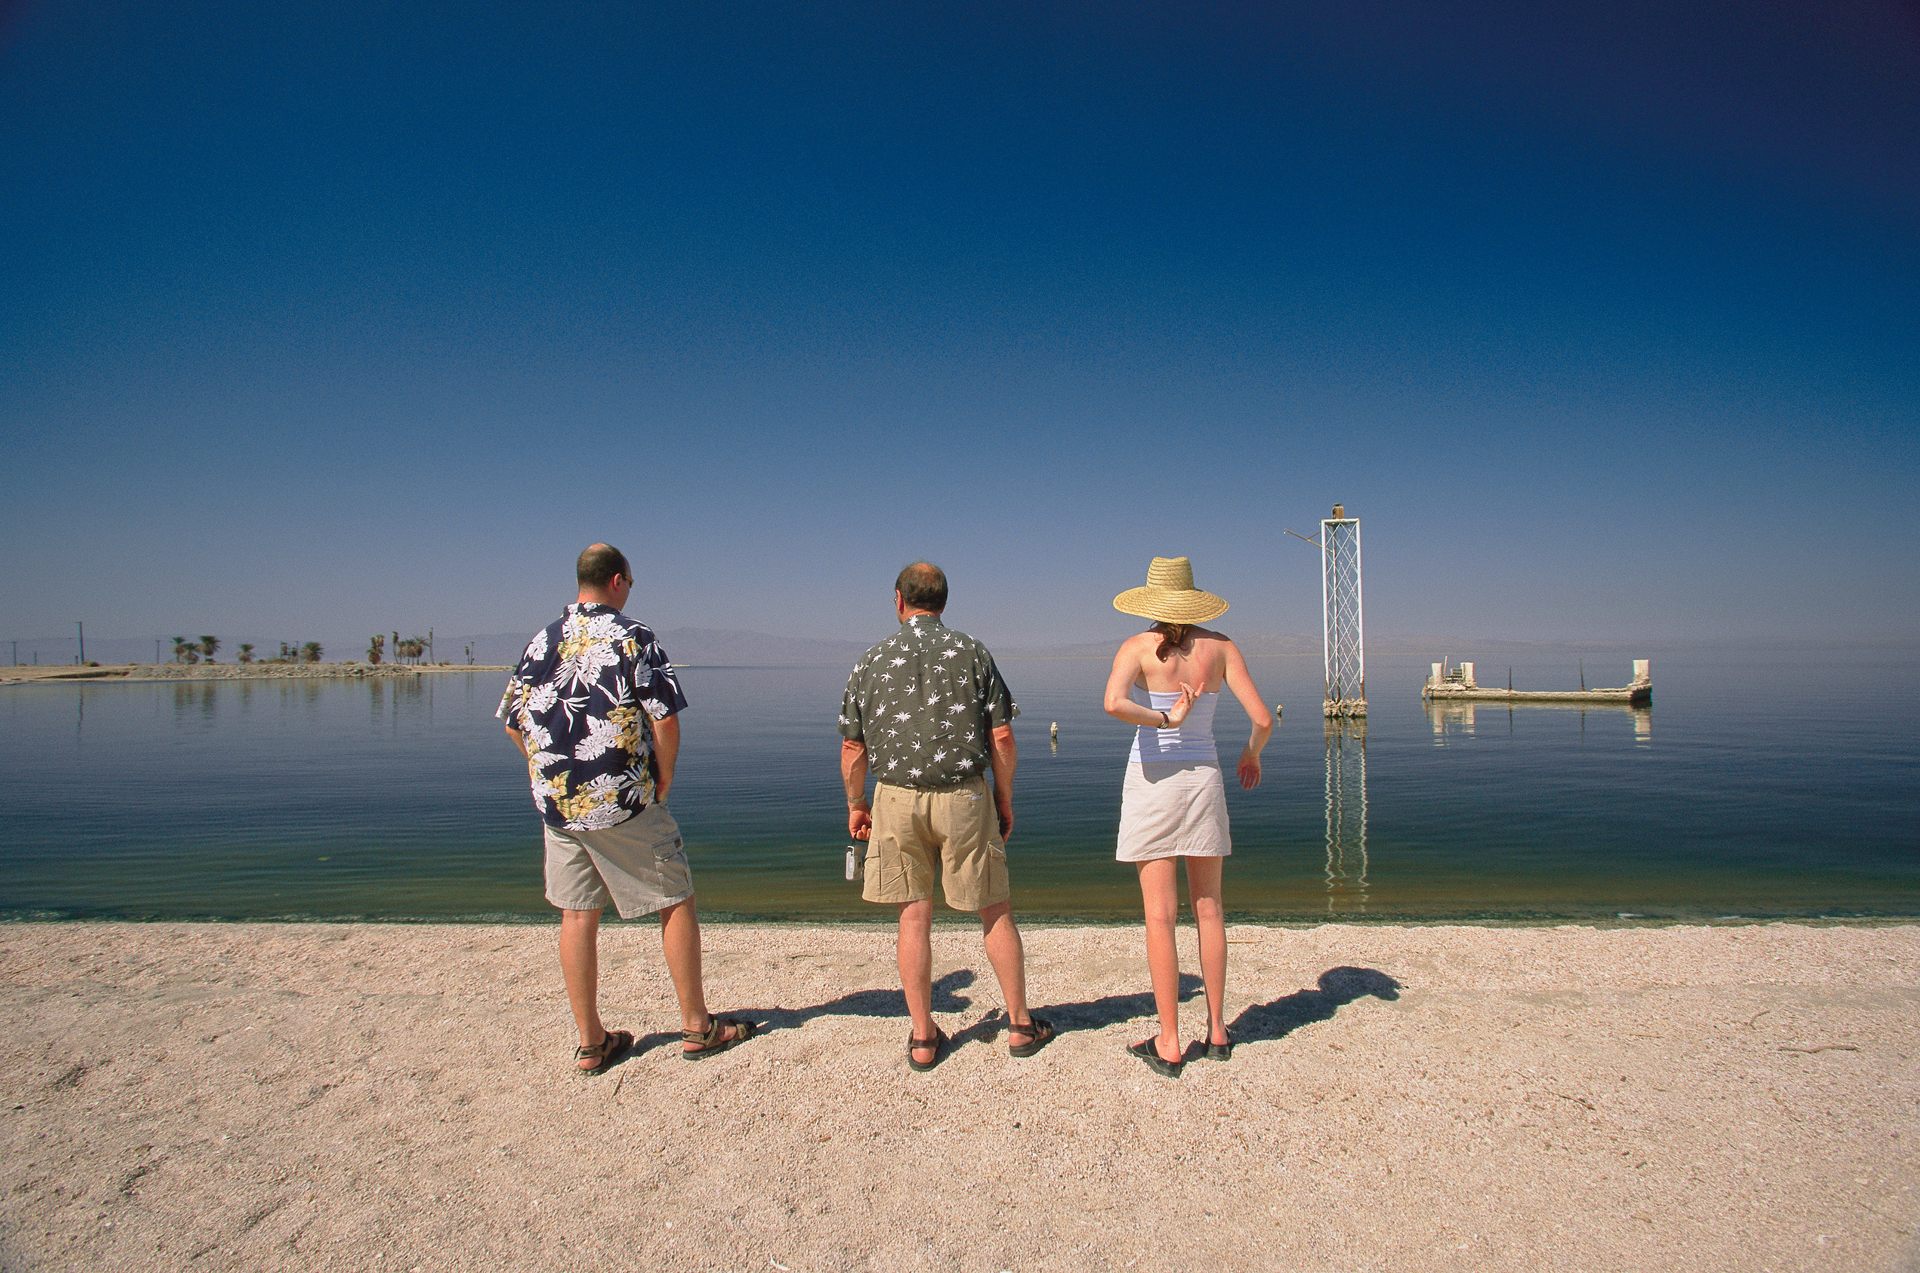 Once a lure for movie stars in the 1950's and 60's, the Salton Sea was expected to become the next Las Vegas. Now tourists can only imagine its former splendor.  Salton City